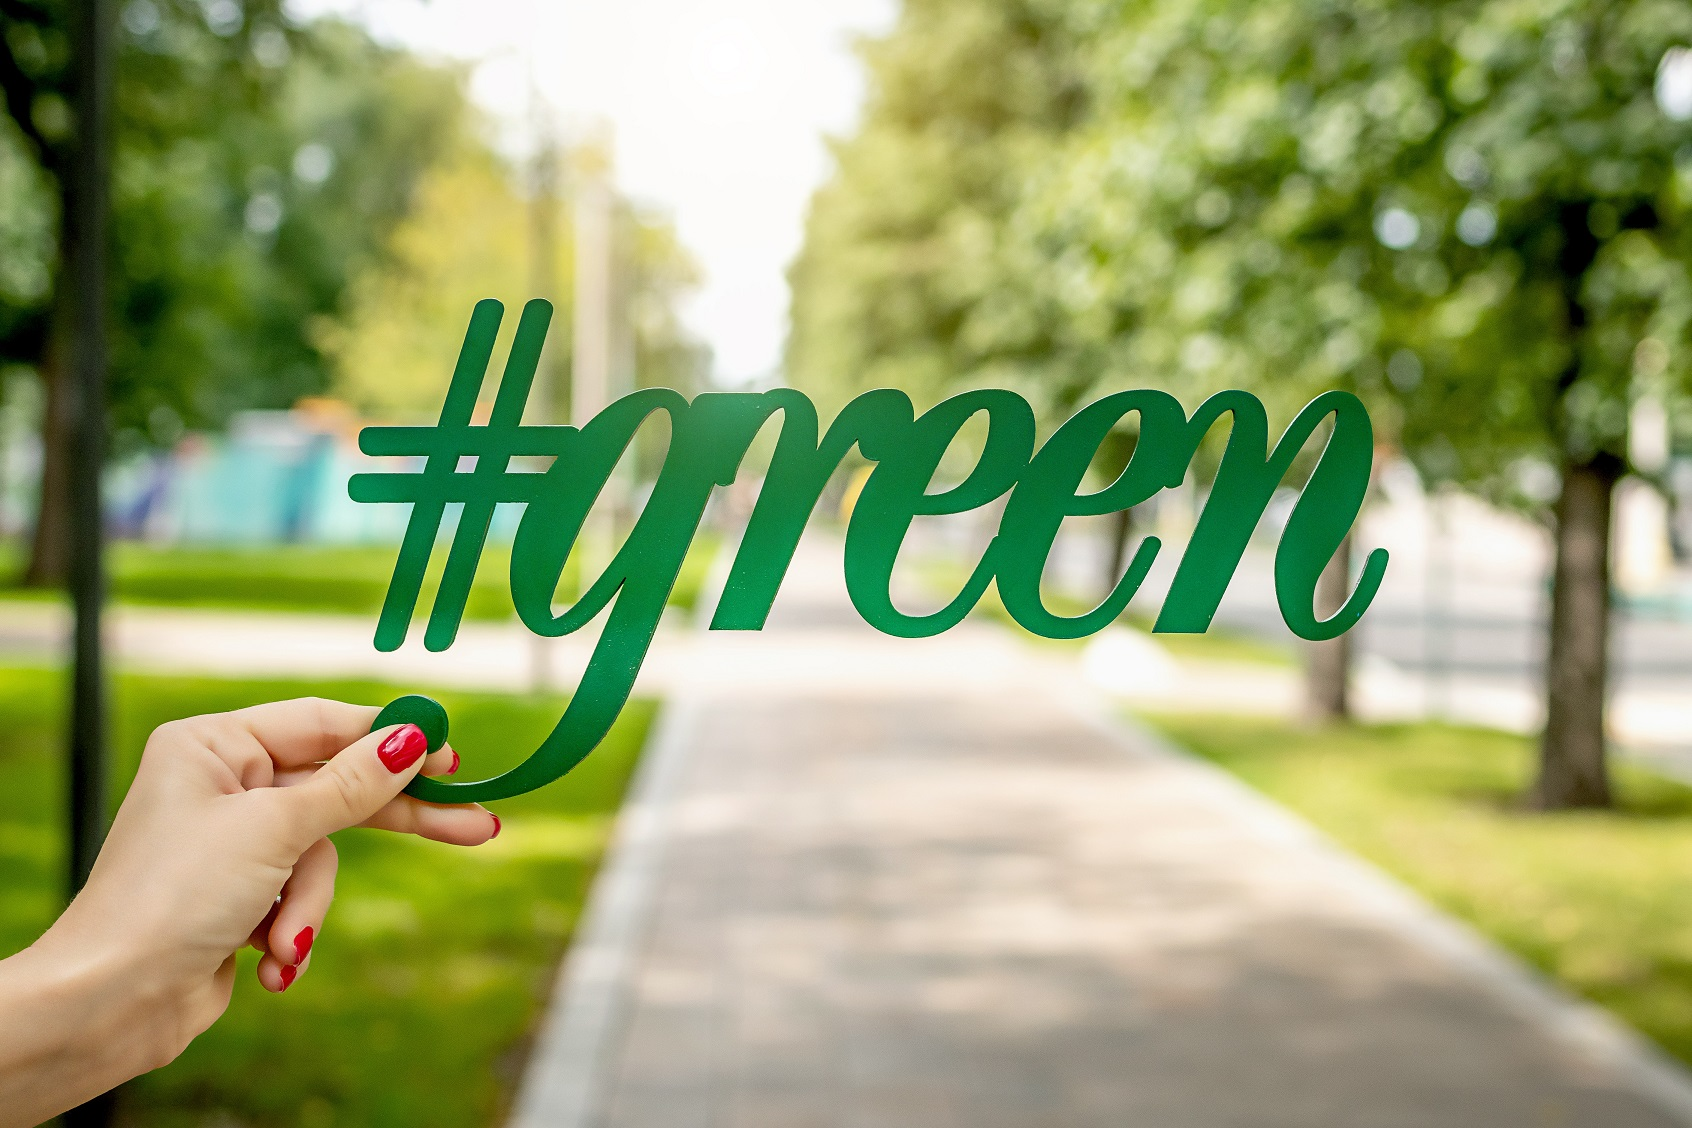 Lady's hand holding text that says #green